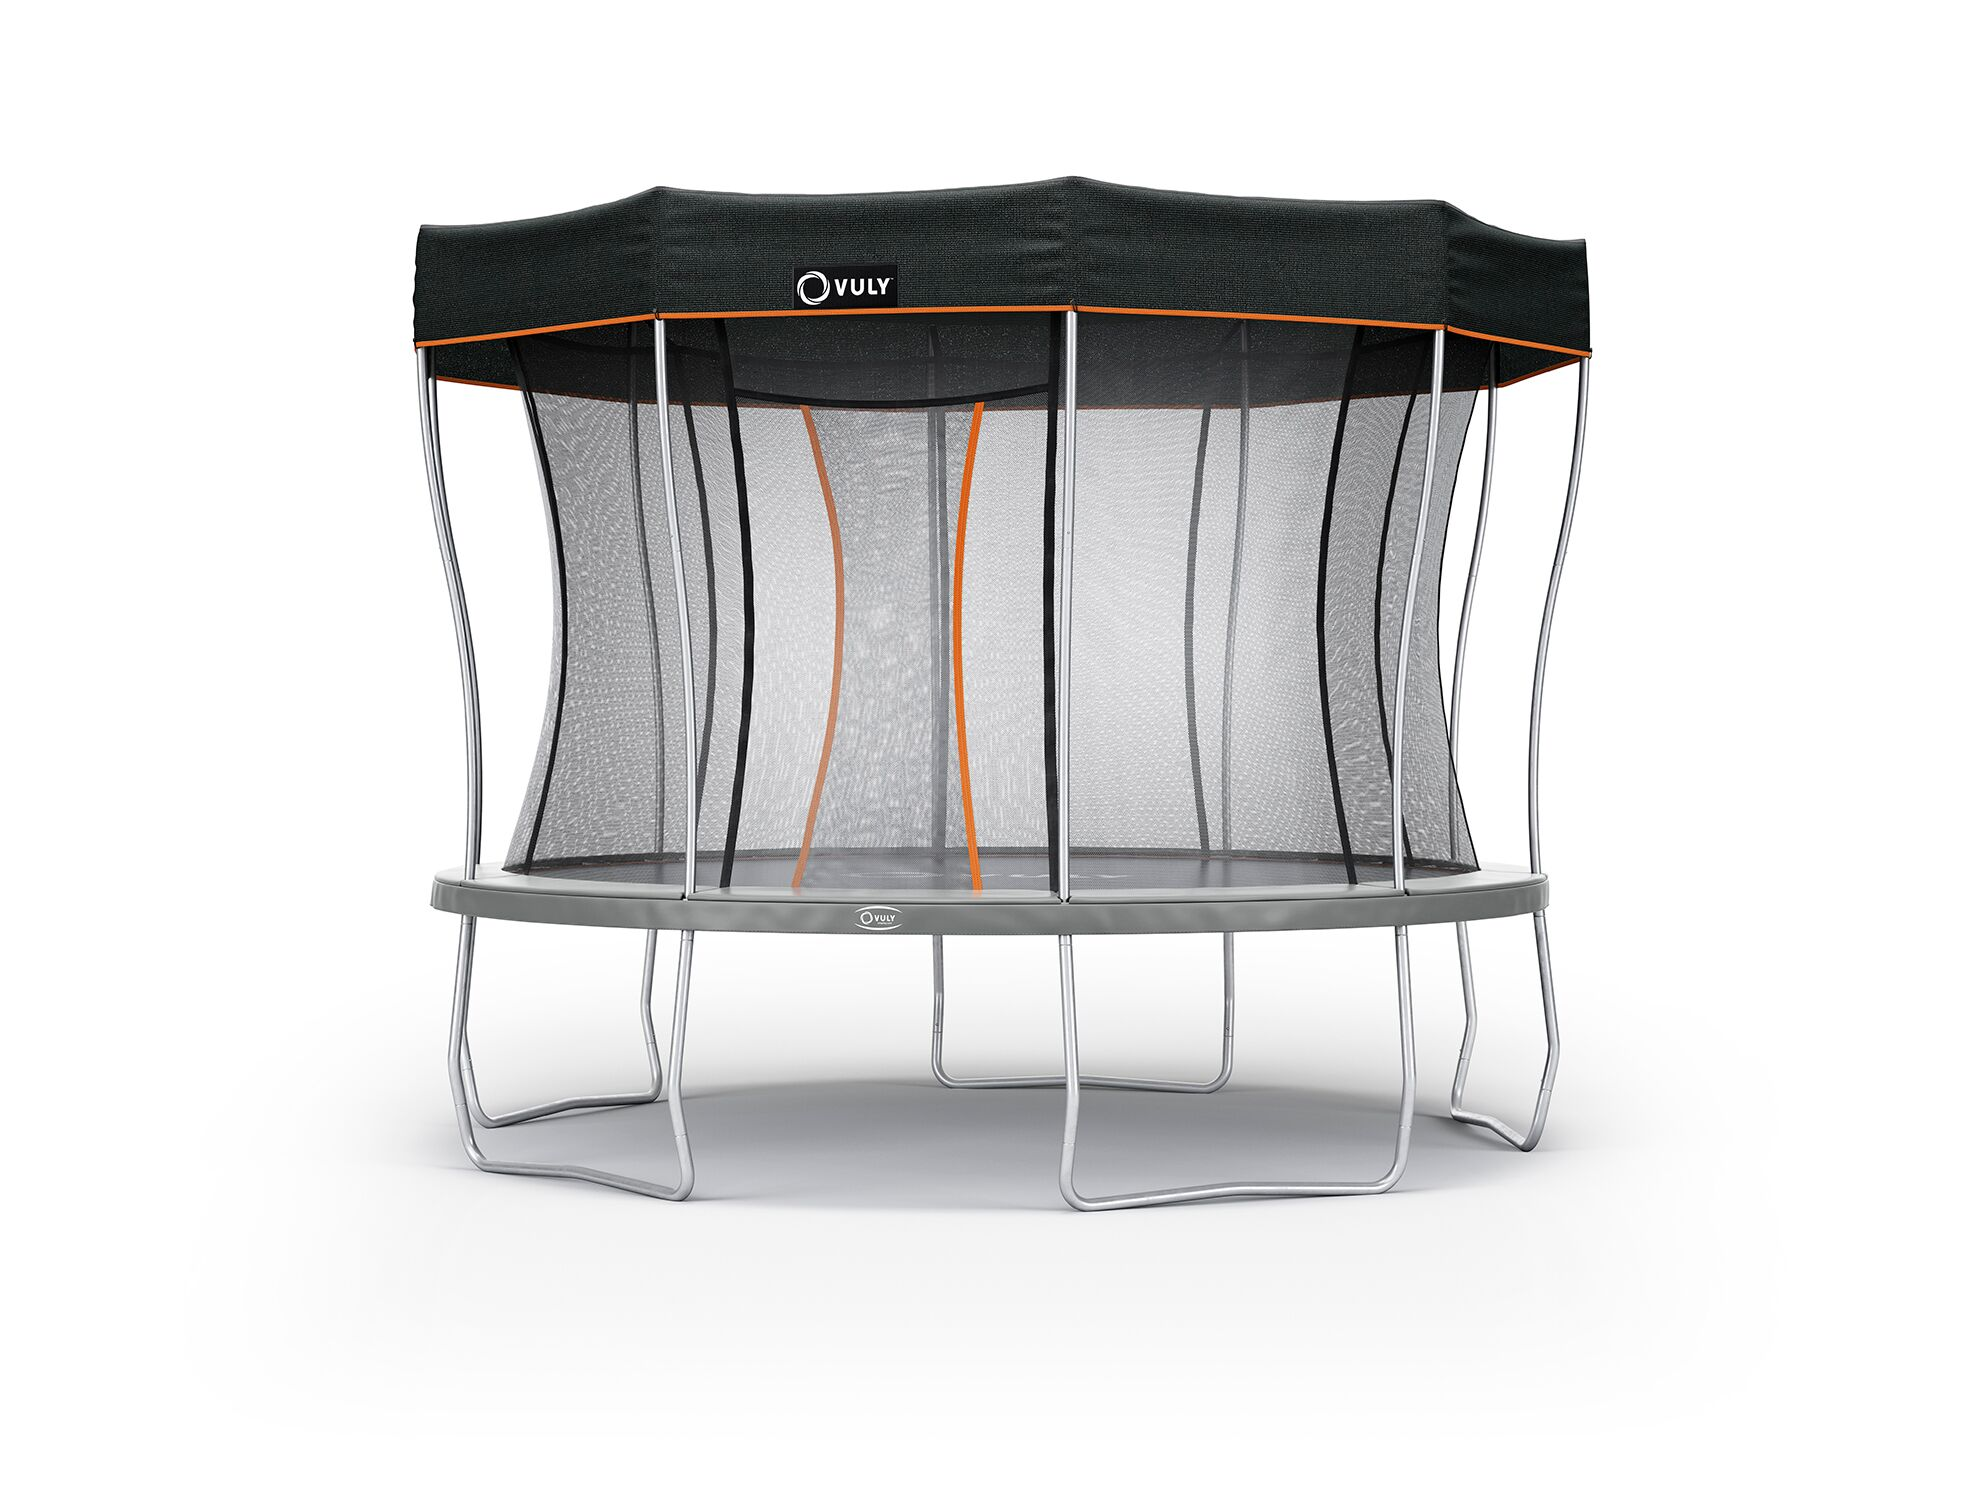 VULY Ultra (L) + FREE Shade Cover + FREE Ladder + $$Off + Perth Delivery + FREE Perth Assembly – Active August Sale (Ends 10/08/21)